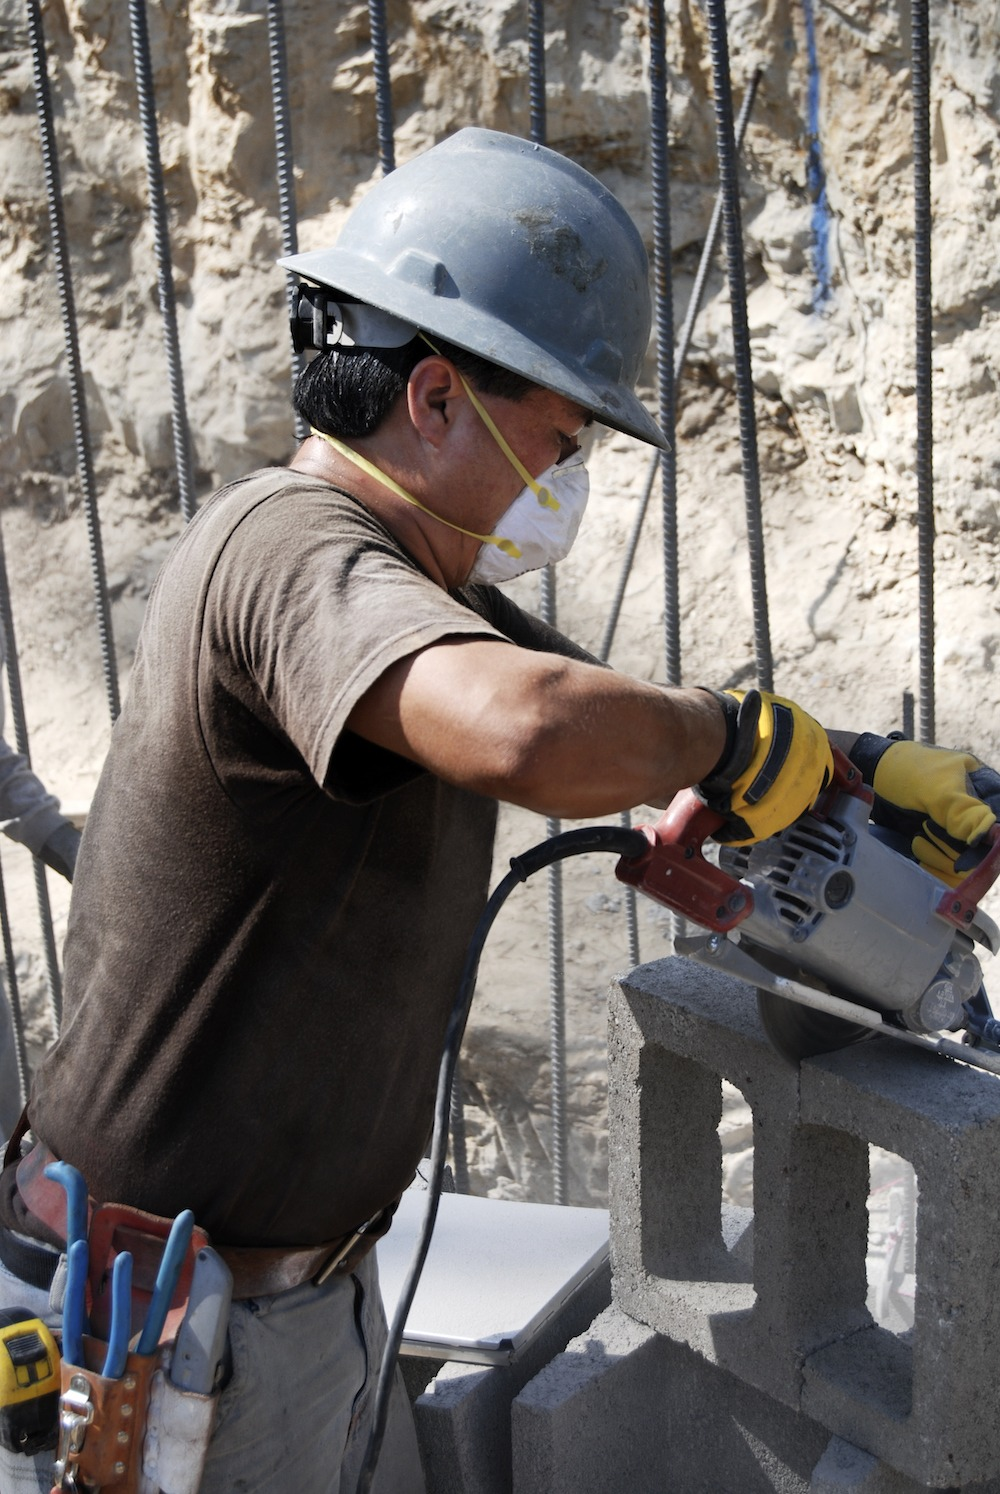 OSHA's Respirable Crystalline Silica Rule: Time to Be